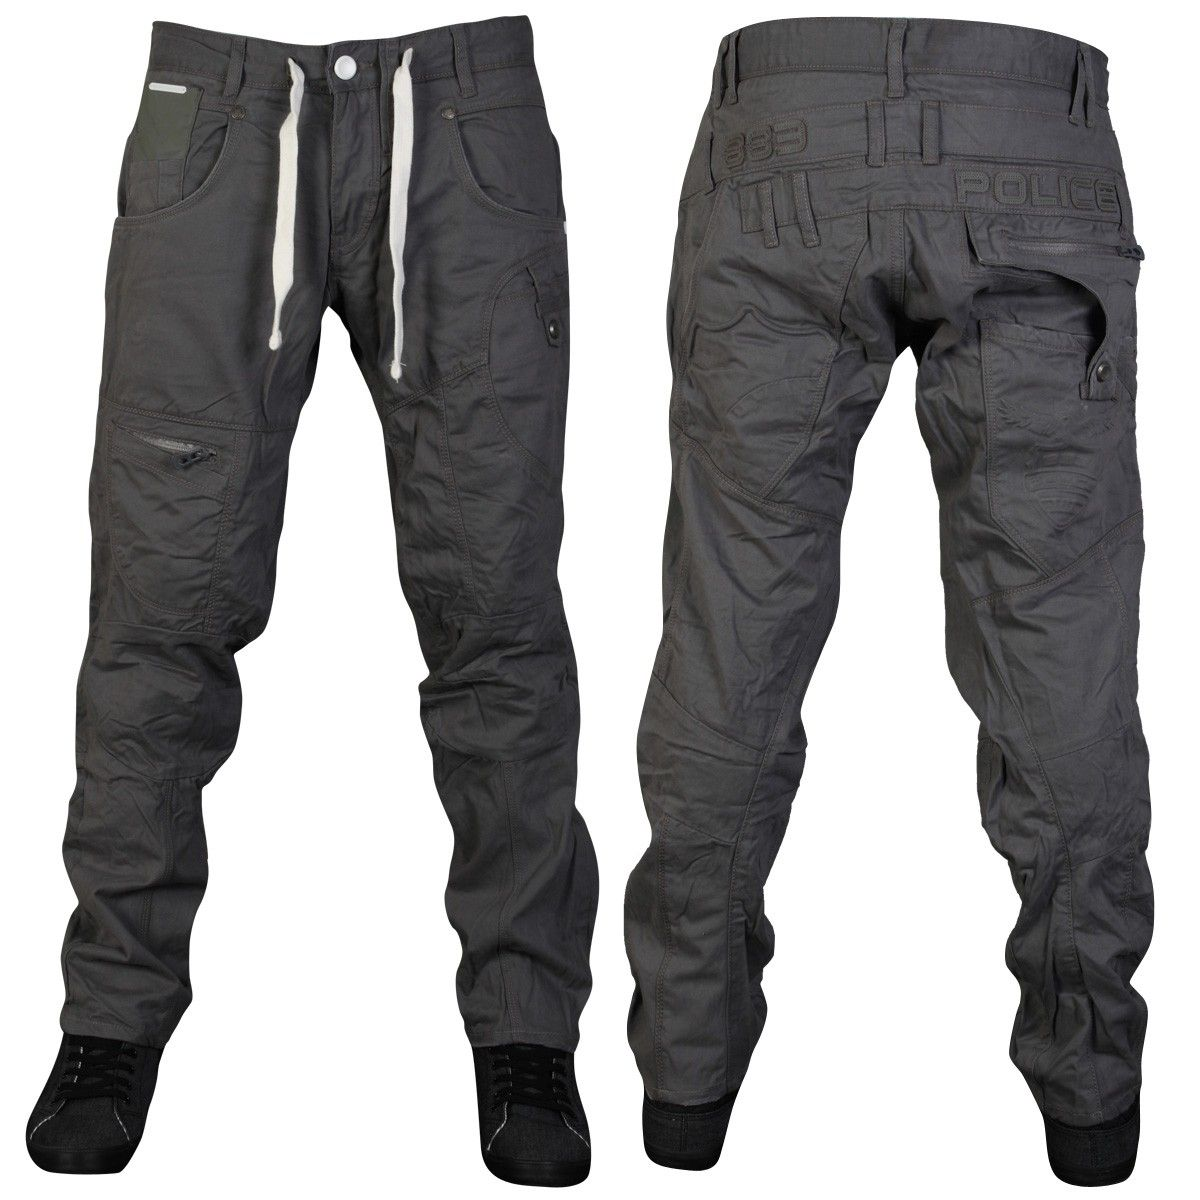 Mens Grey 883 Police Otif Tapered Fit Cargo Pants Trousers All Waist   Leg  Sizes Image 0 7e1a025dfae